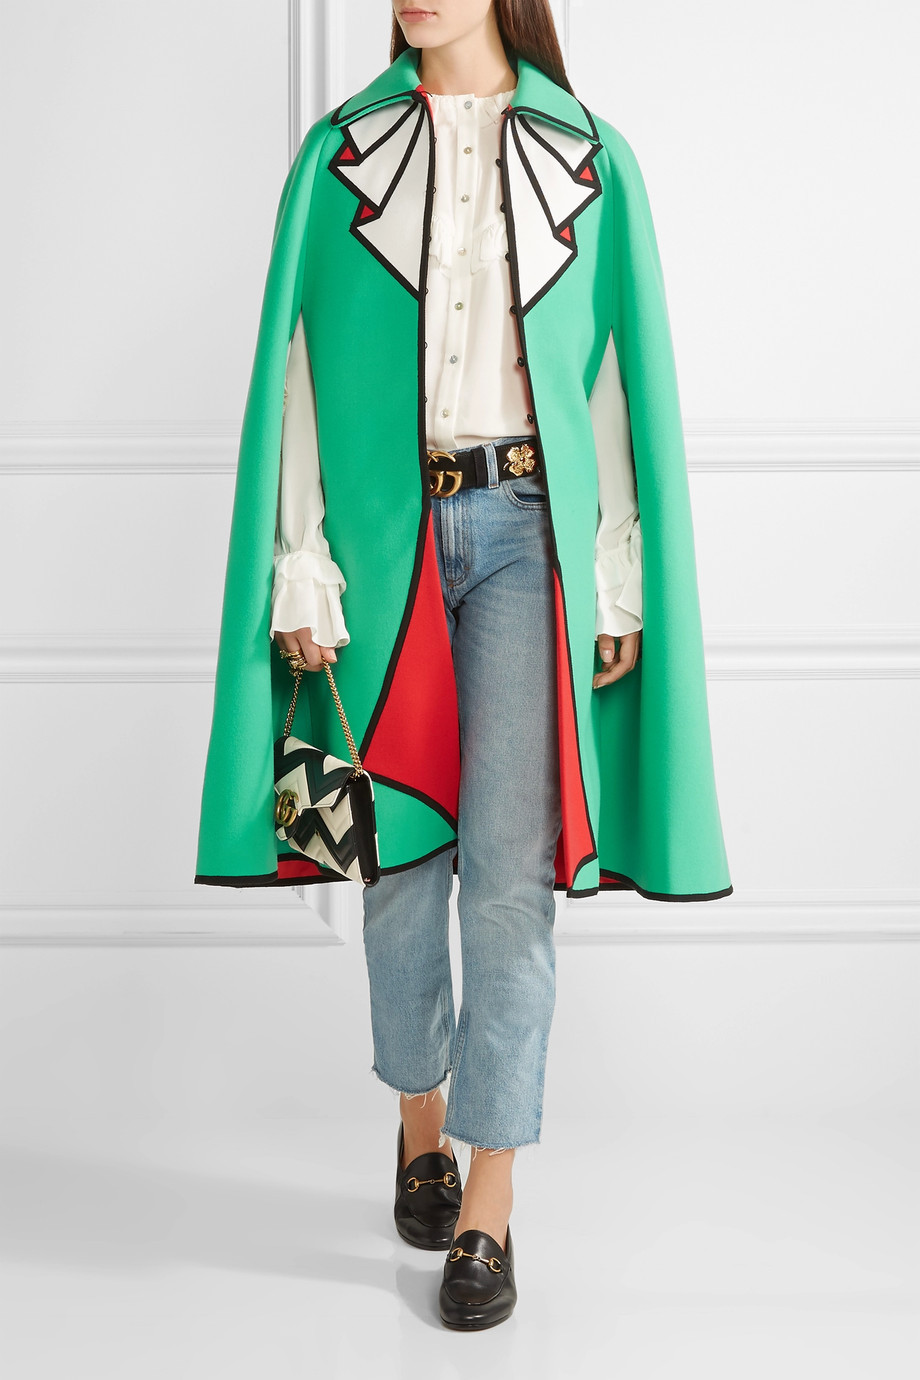 Gucci Printed wool-felt cape $3,600